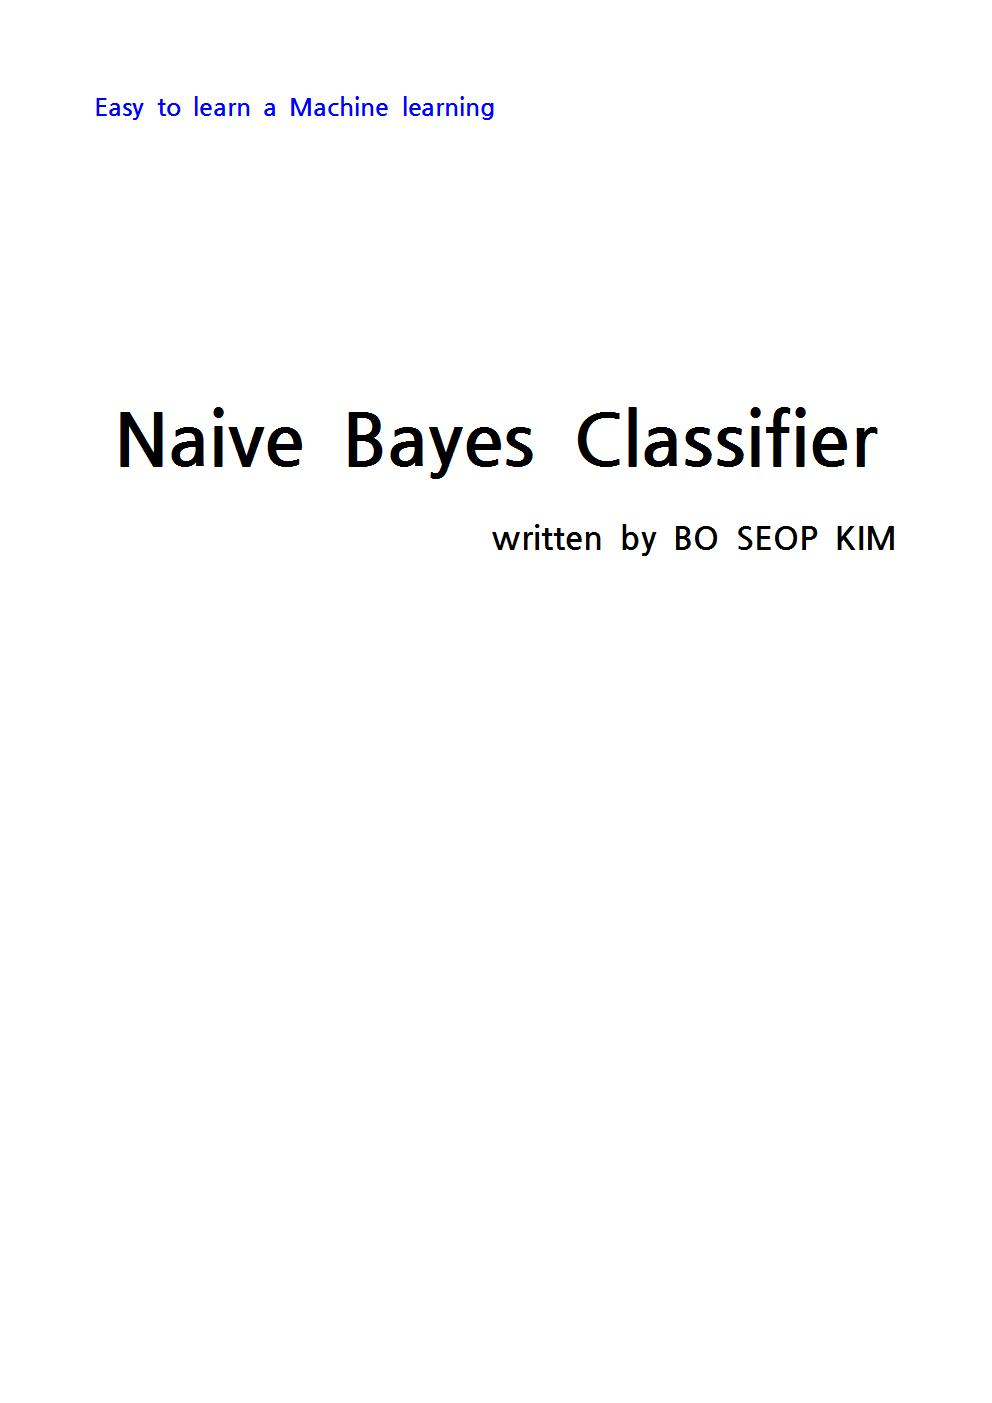 Naive Bayes Classifier001.jpg